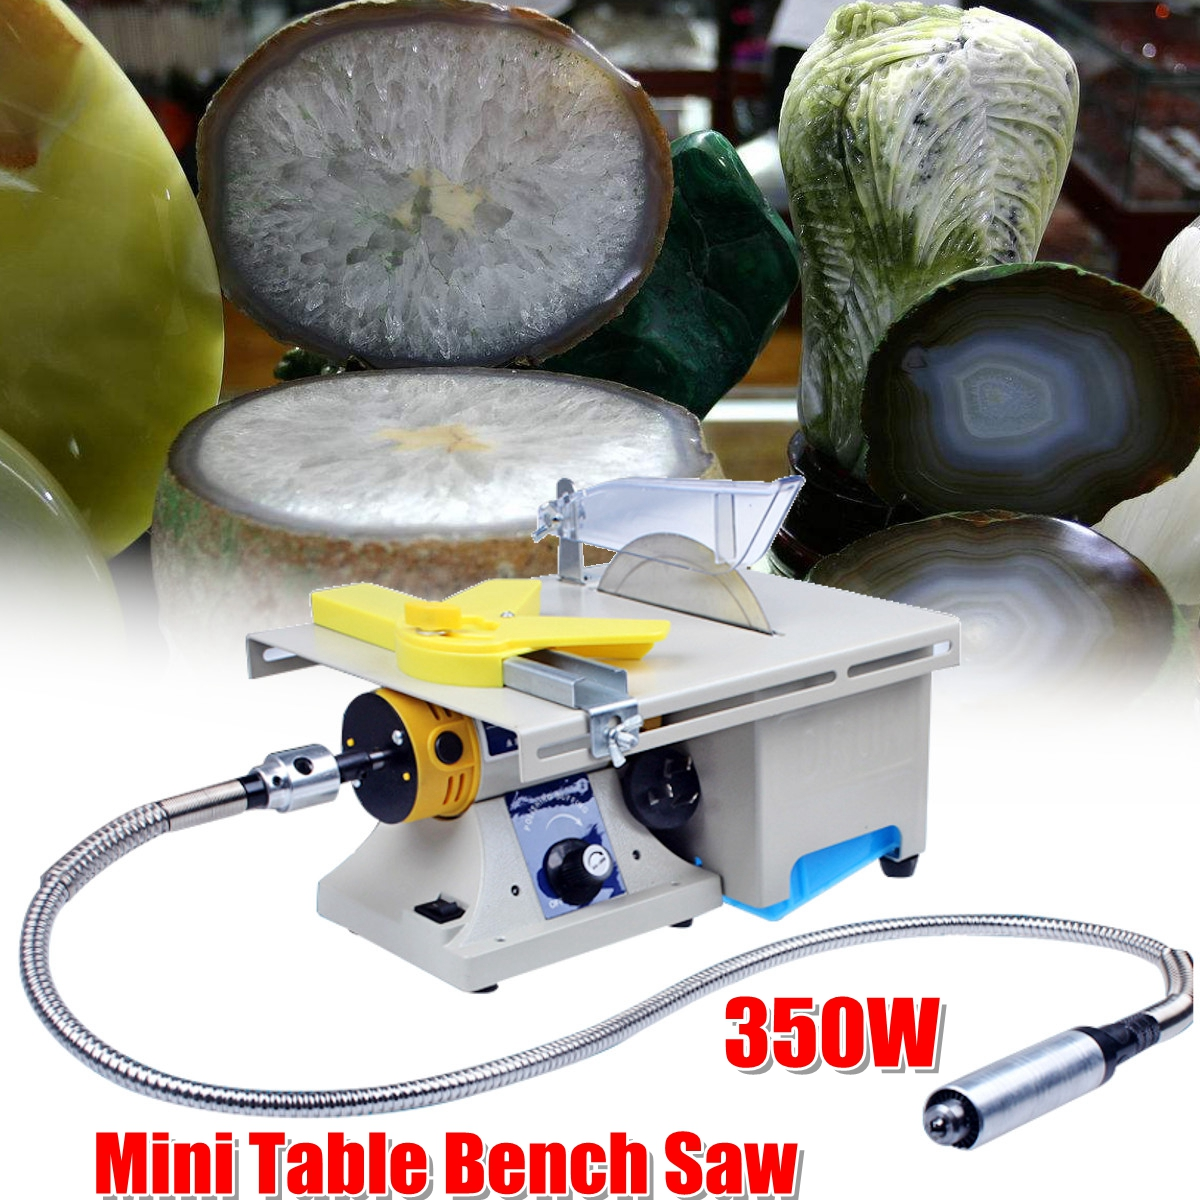 350W Mini Table Bench Saw Electric Grinding Engraving Machine Jade Wood Stone Polishing Router For Bodhi Ivory Carving Polisher 1pcs multifunctional mini bench lathe machine electric grinder polisher drill saw tool 350w 10000 r min